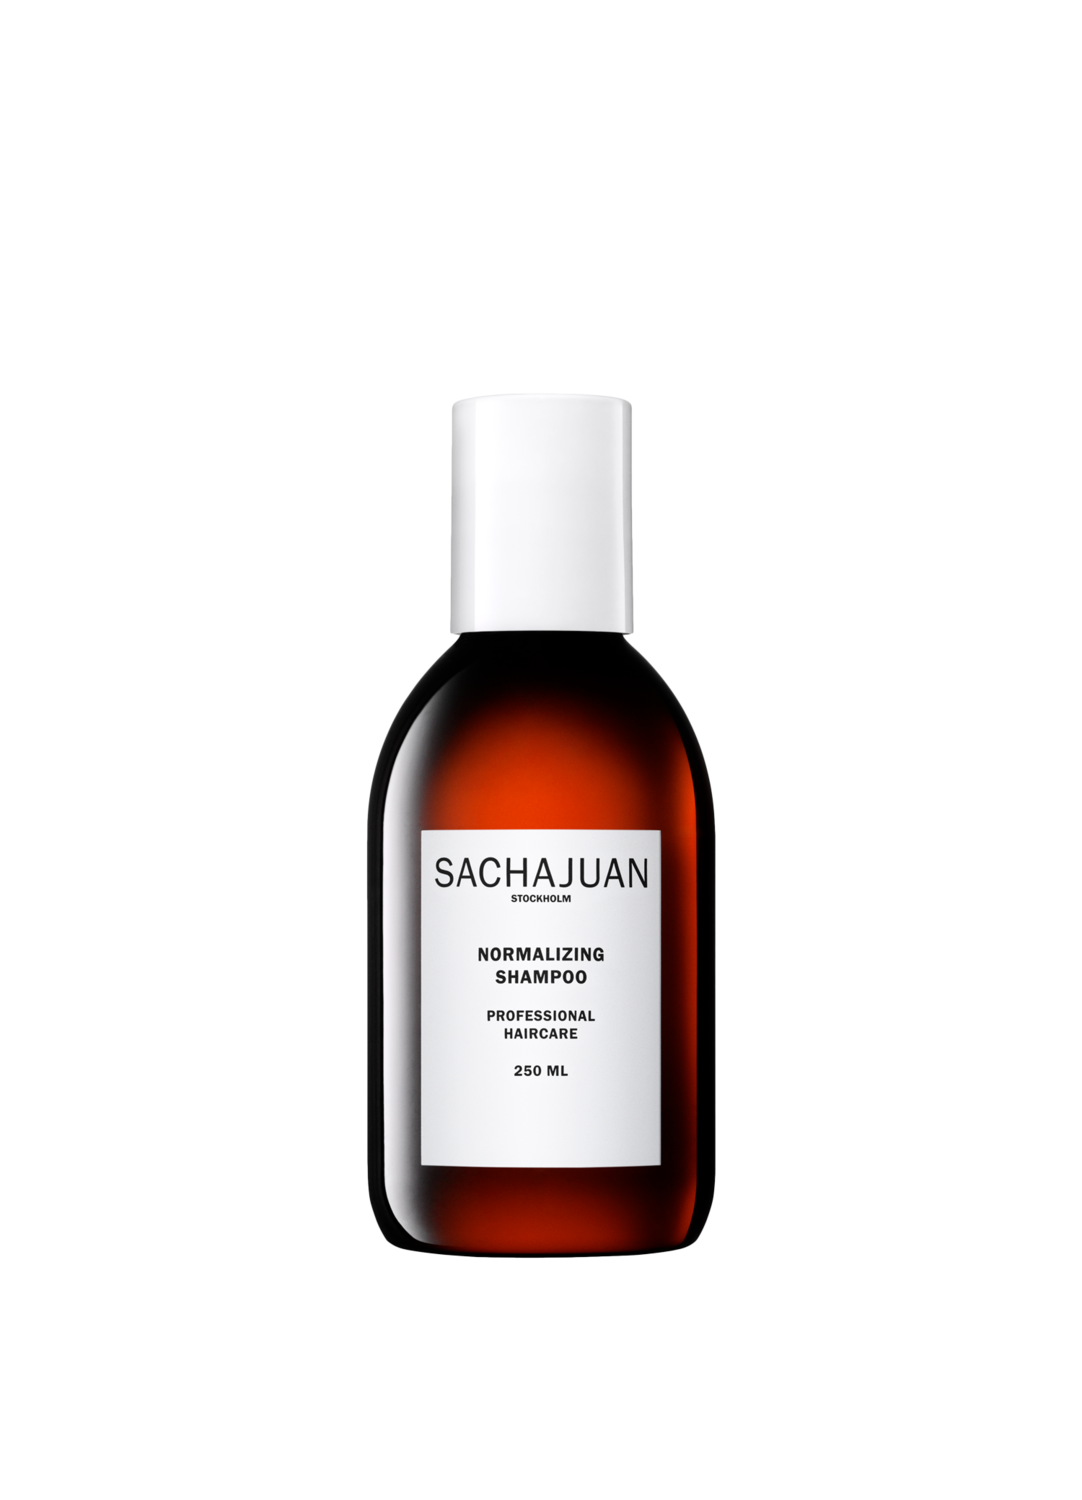 sachajuan | normalizing shampoo[product_type ]sachajuan - Kiss and Makeup